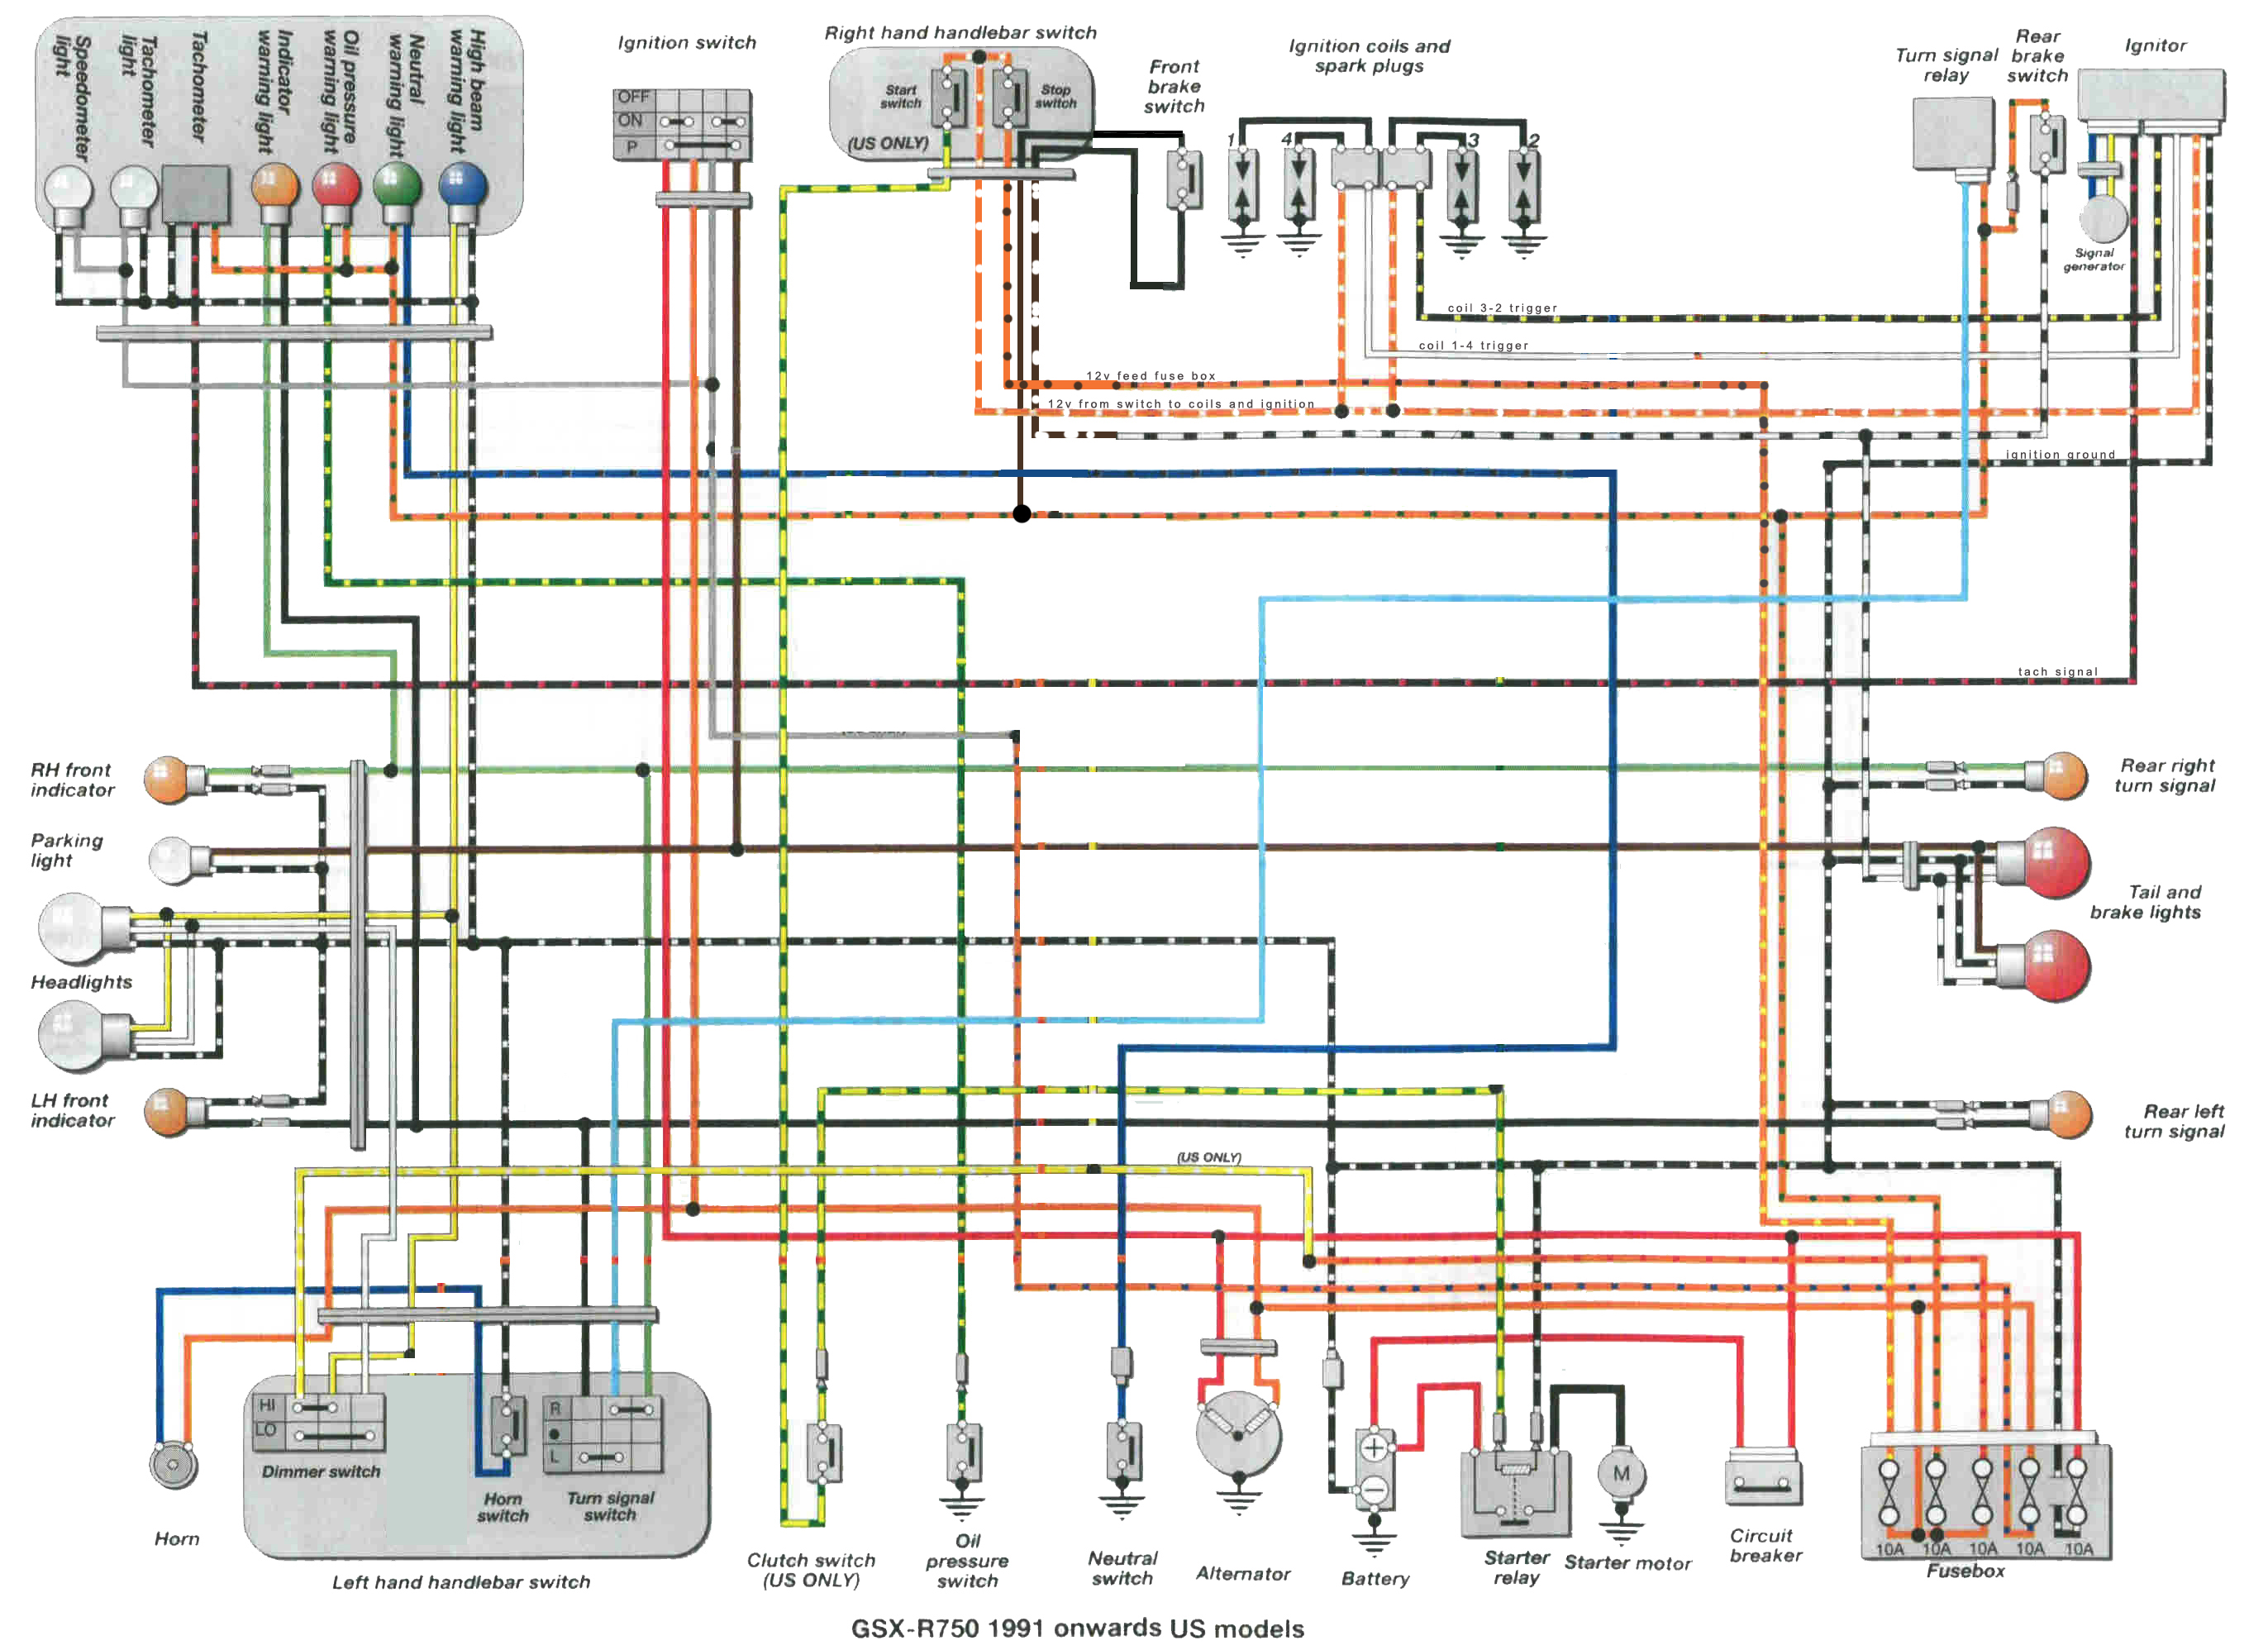 john deere ignition switch wiring diagram pglXAkT wiring diagrams \u2022 j squared co  at readyjetset.co